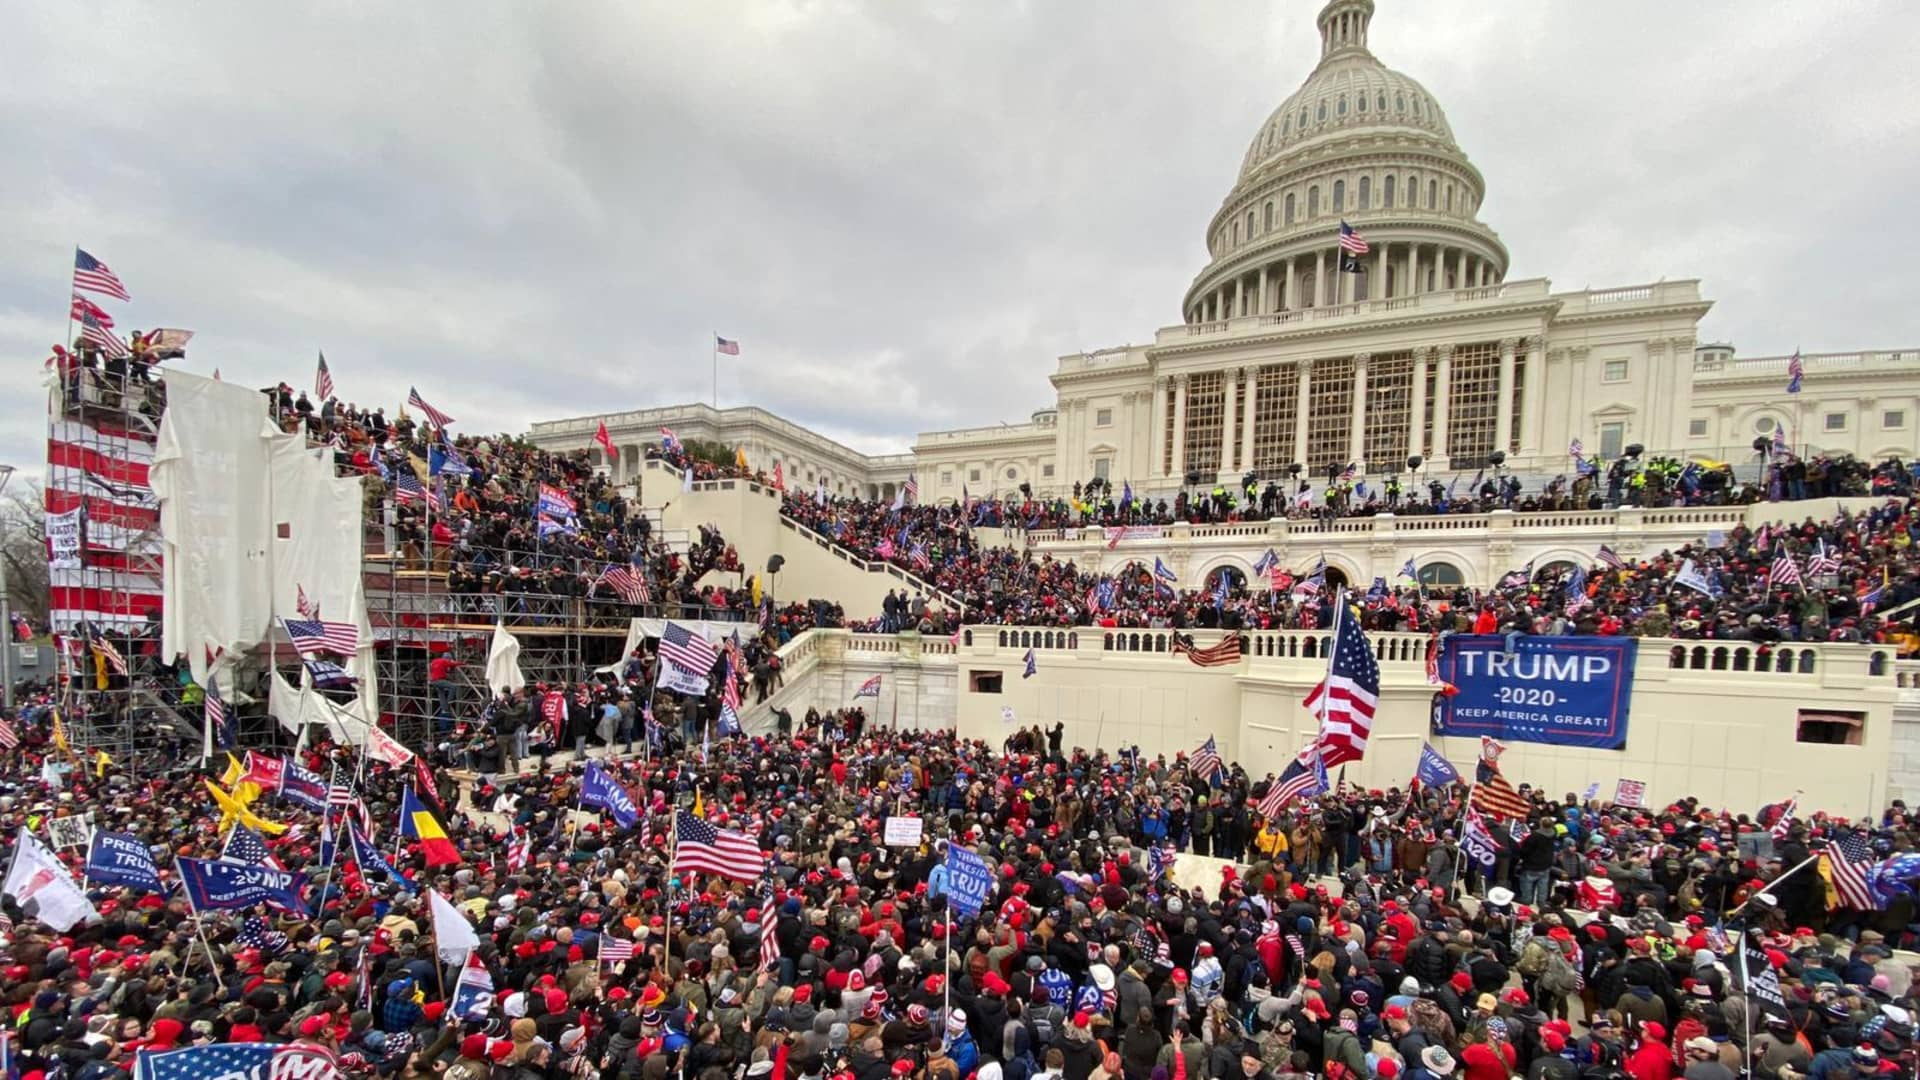 US President Donald Trumps supporters gather outside the Capitol building in Washington D.C., United States on January 06, 2021.